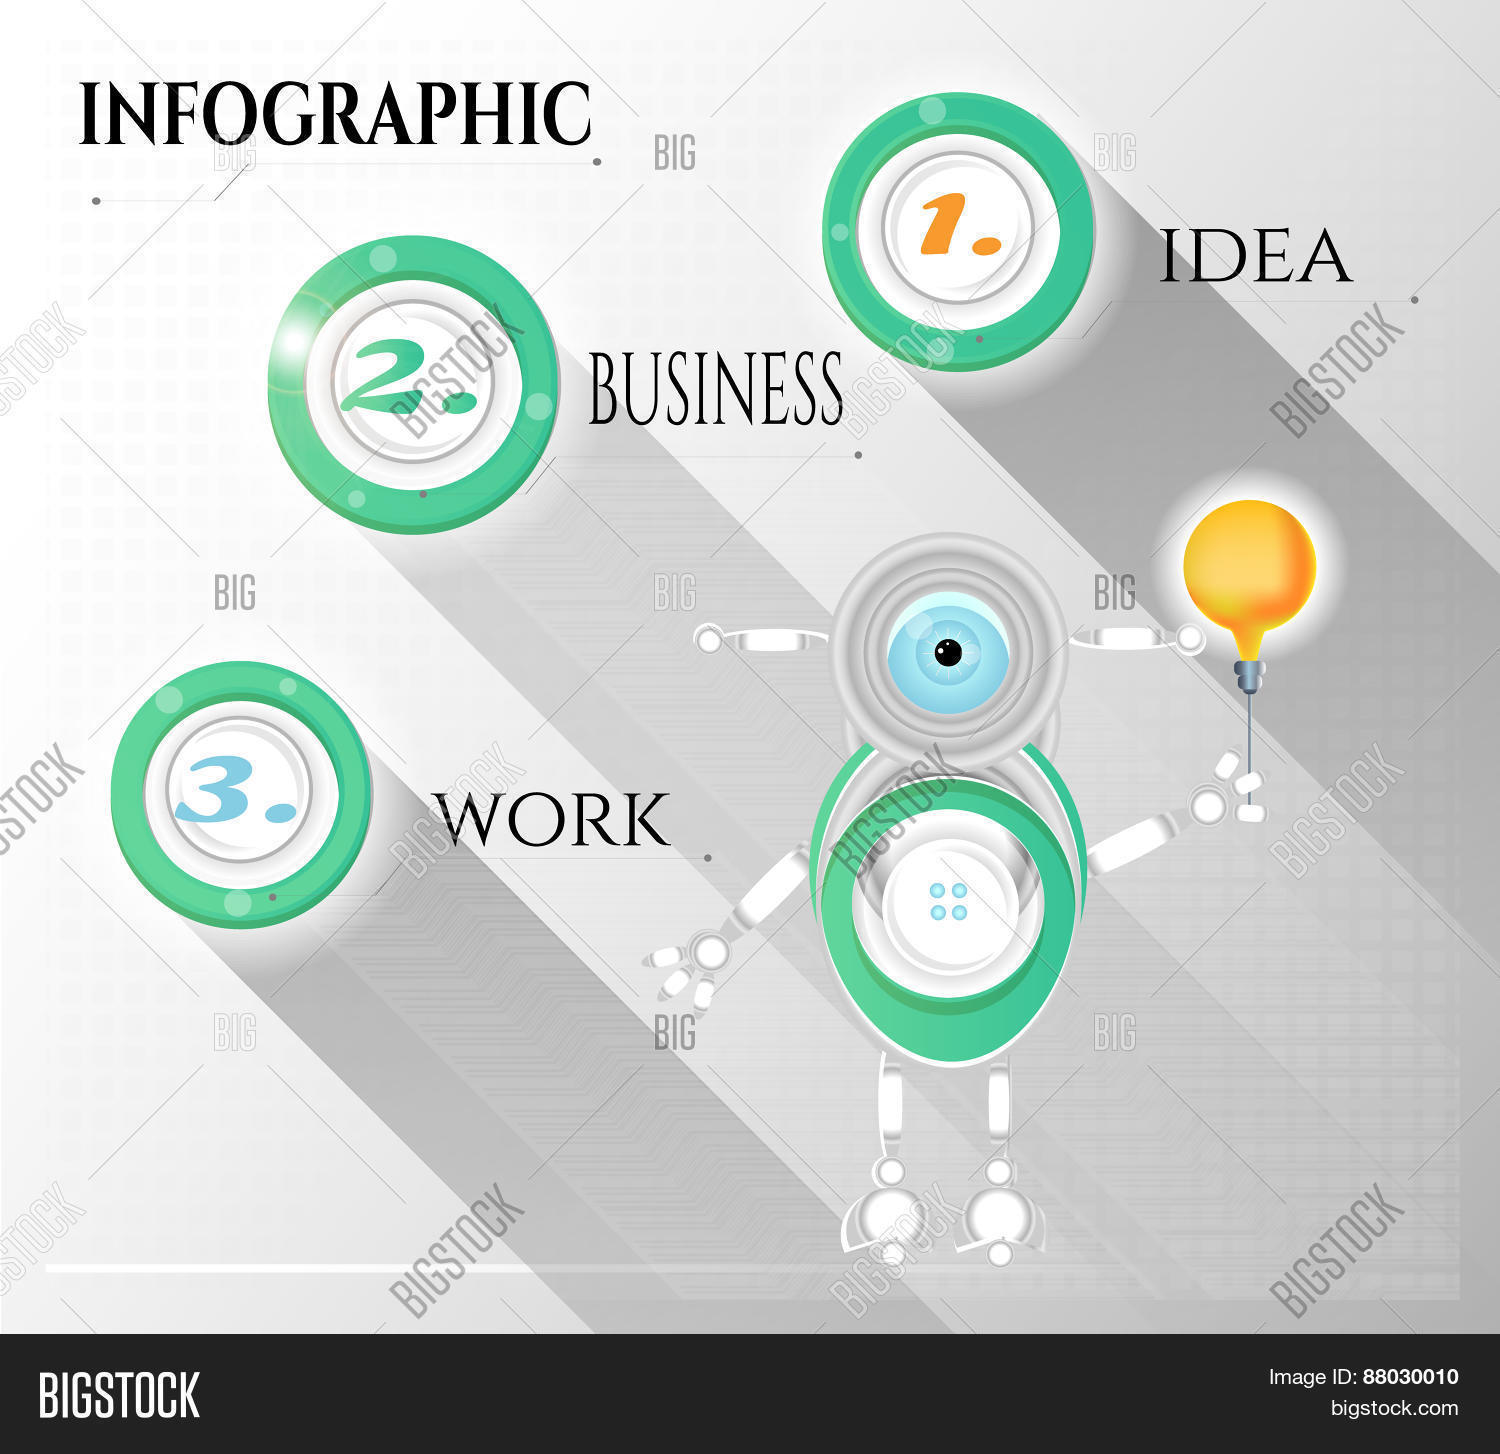 Modern Abstract Vector Photo Free Trial Bigstock Idea Infographic With Light Bulb Template For Creative Diagram Numbers Text Robot Design